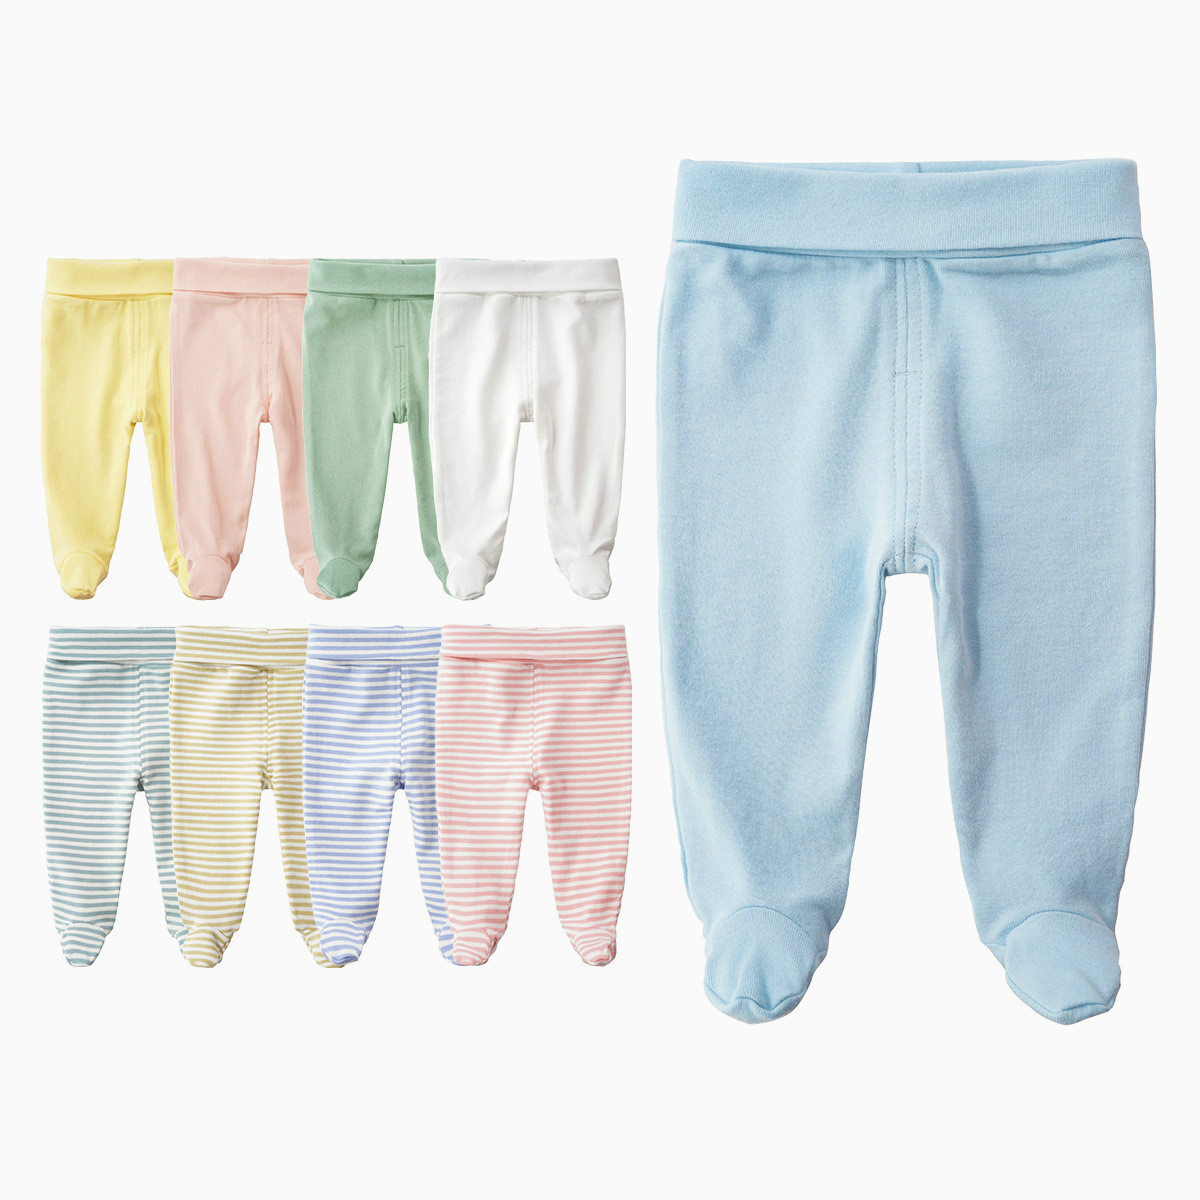 2020 Newborn Baby Pants Baby Boy Clothes Autumn Unisex Solid Loose Casual Cotton Broadcloth Infant-clothing Baby Leggins